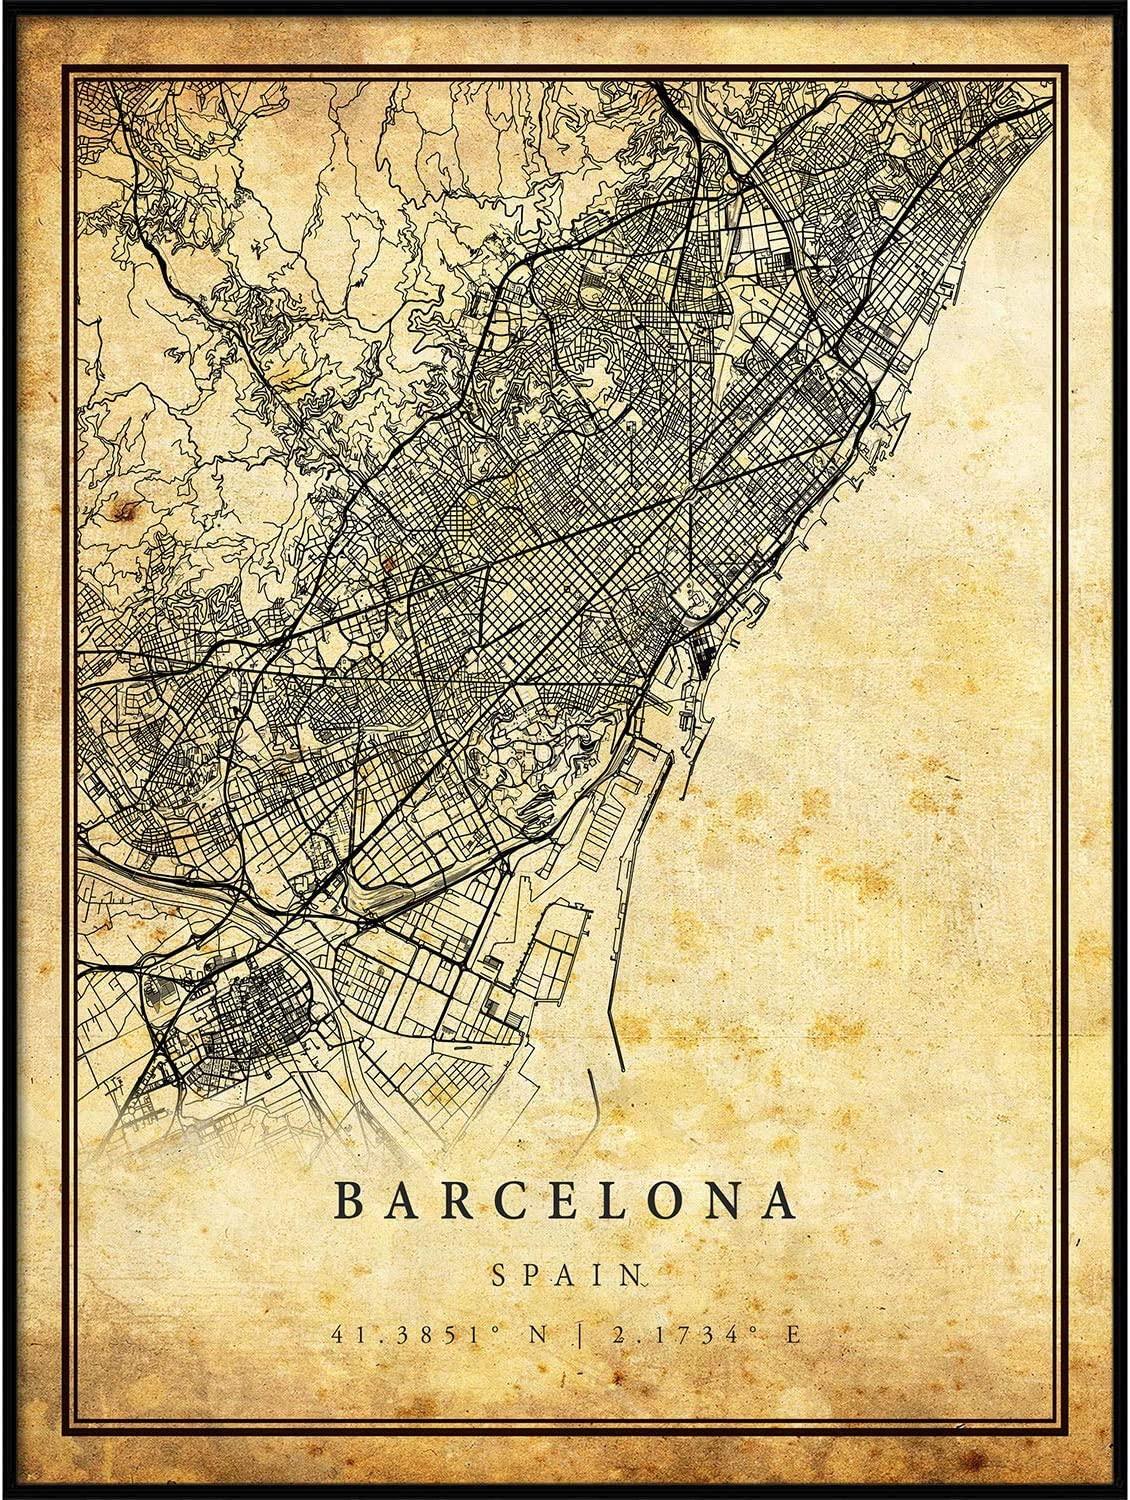 Barcelona map Vintage Style Poster Print   Old City Artwork Prints   Antique Style Home Decor   Spain Wall Art Gift   Antique map Wall Art 8.5x11